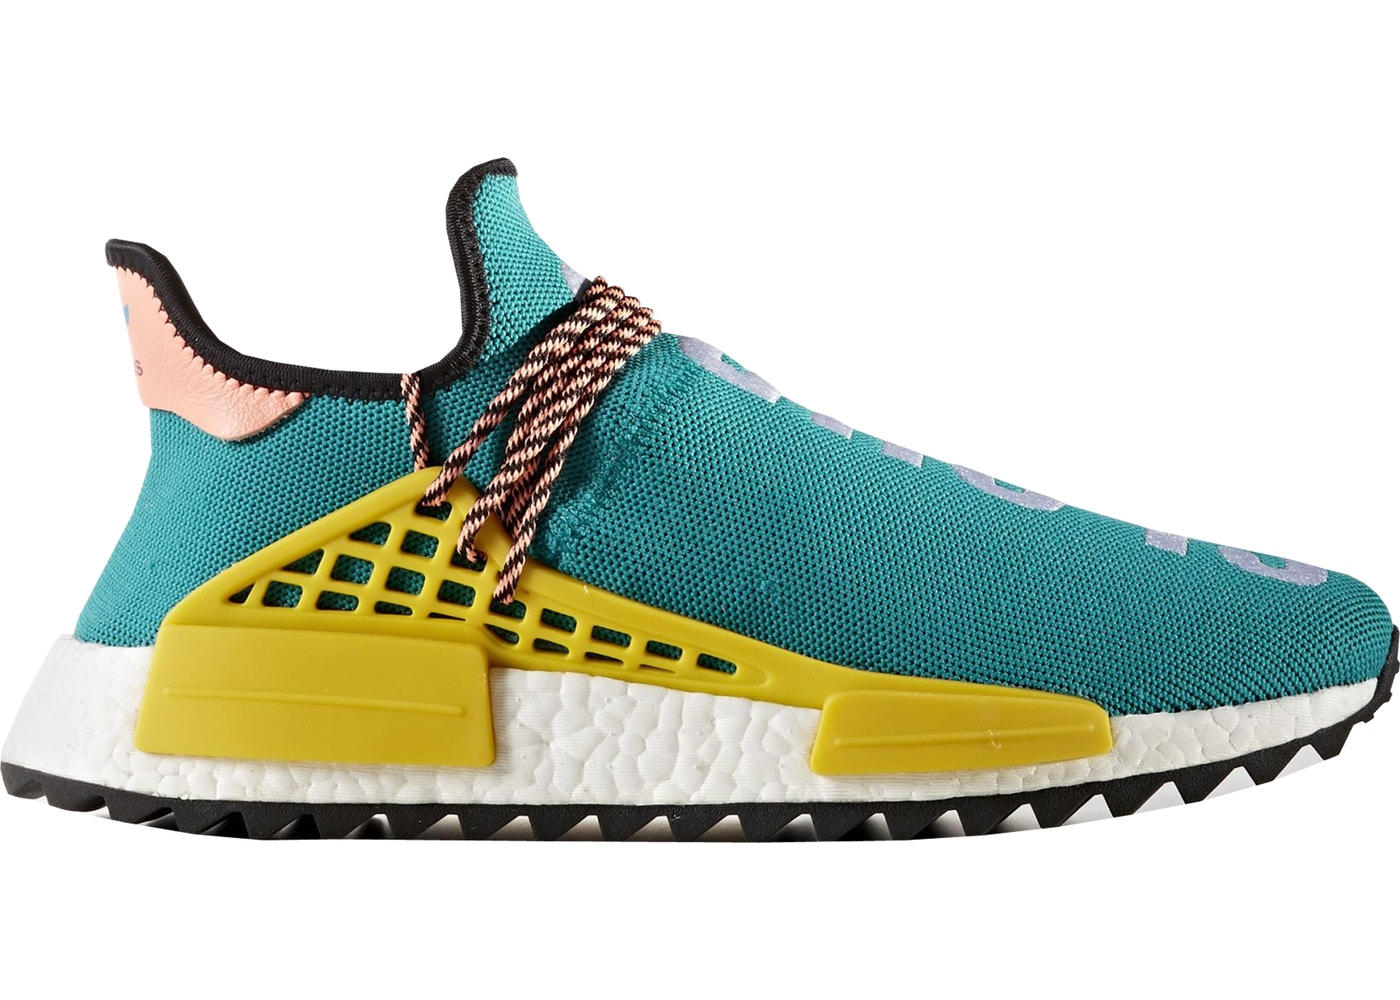 quality design 02c5f bbb6a adidas NMD HU Shoes - Release Date